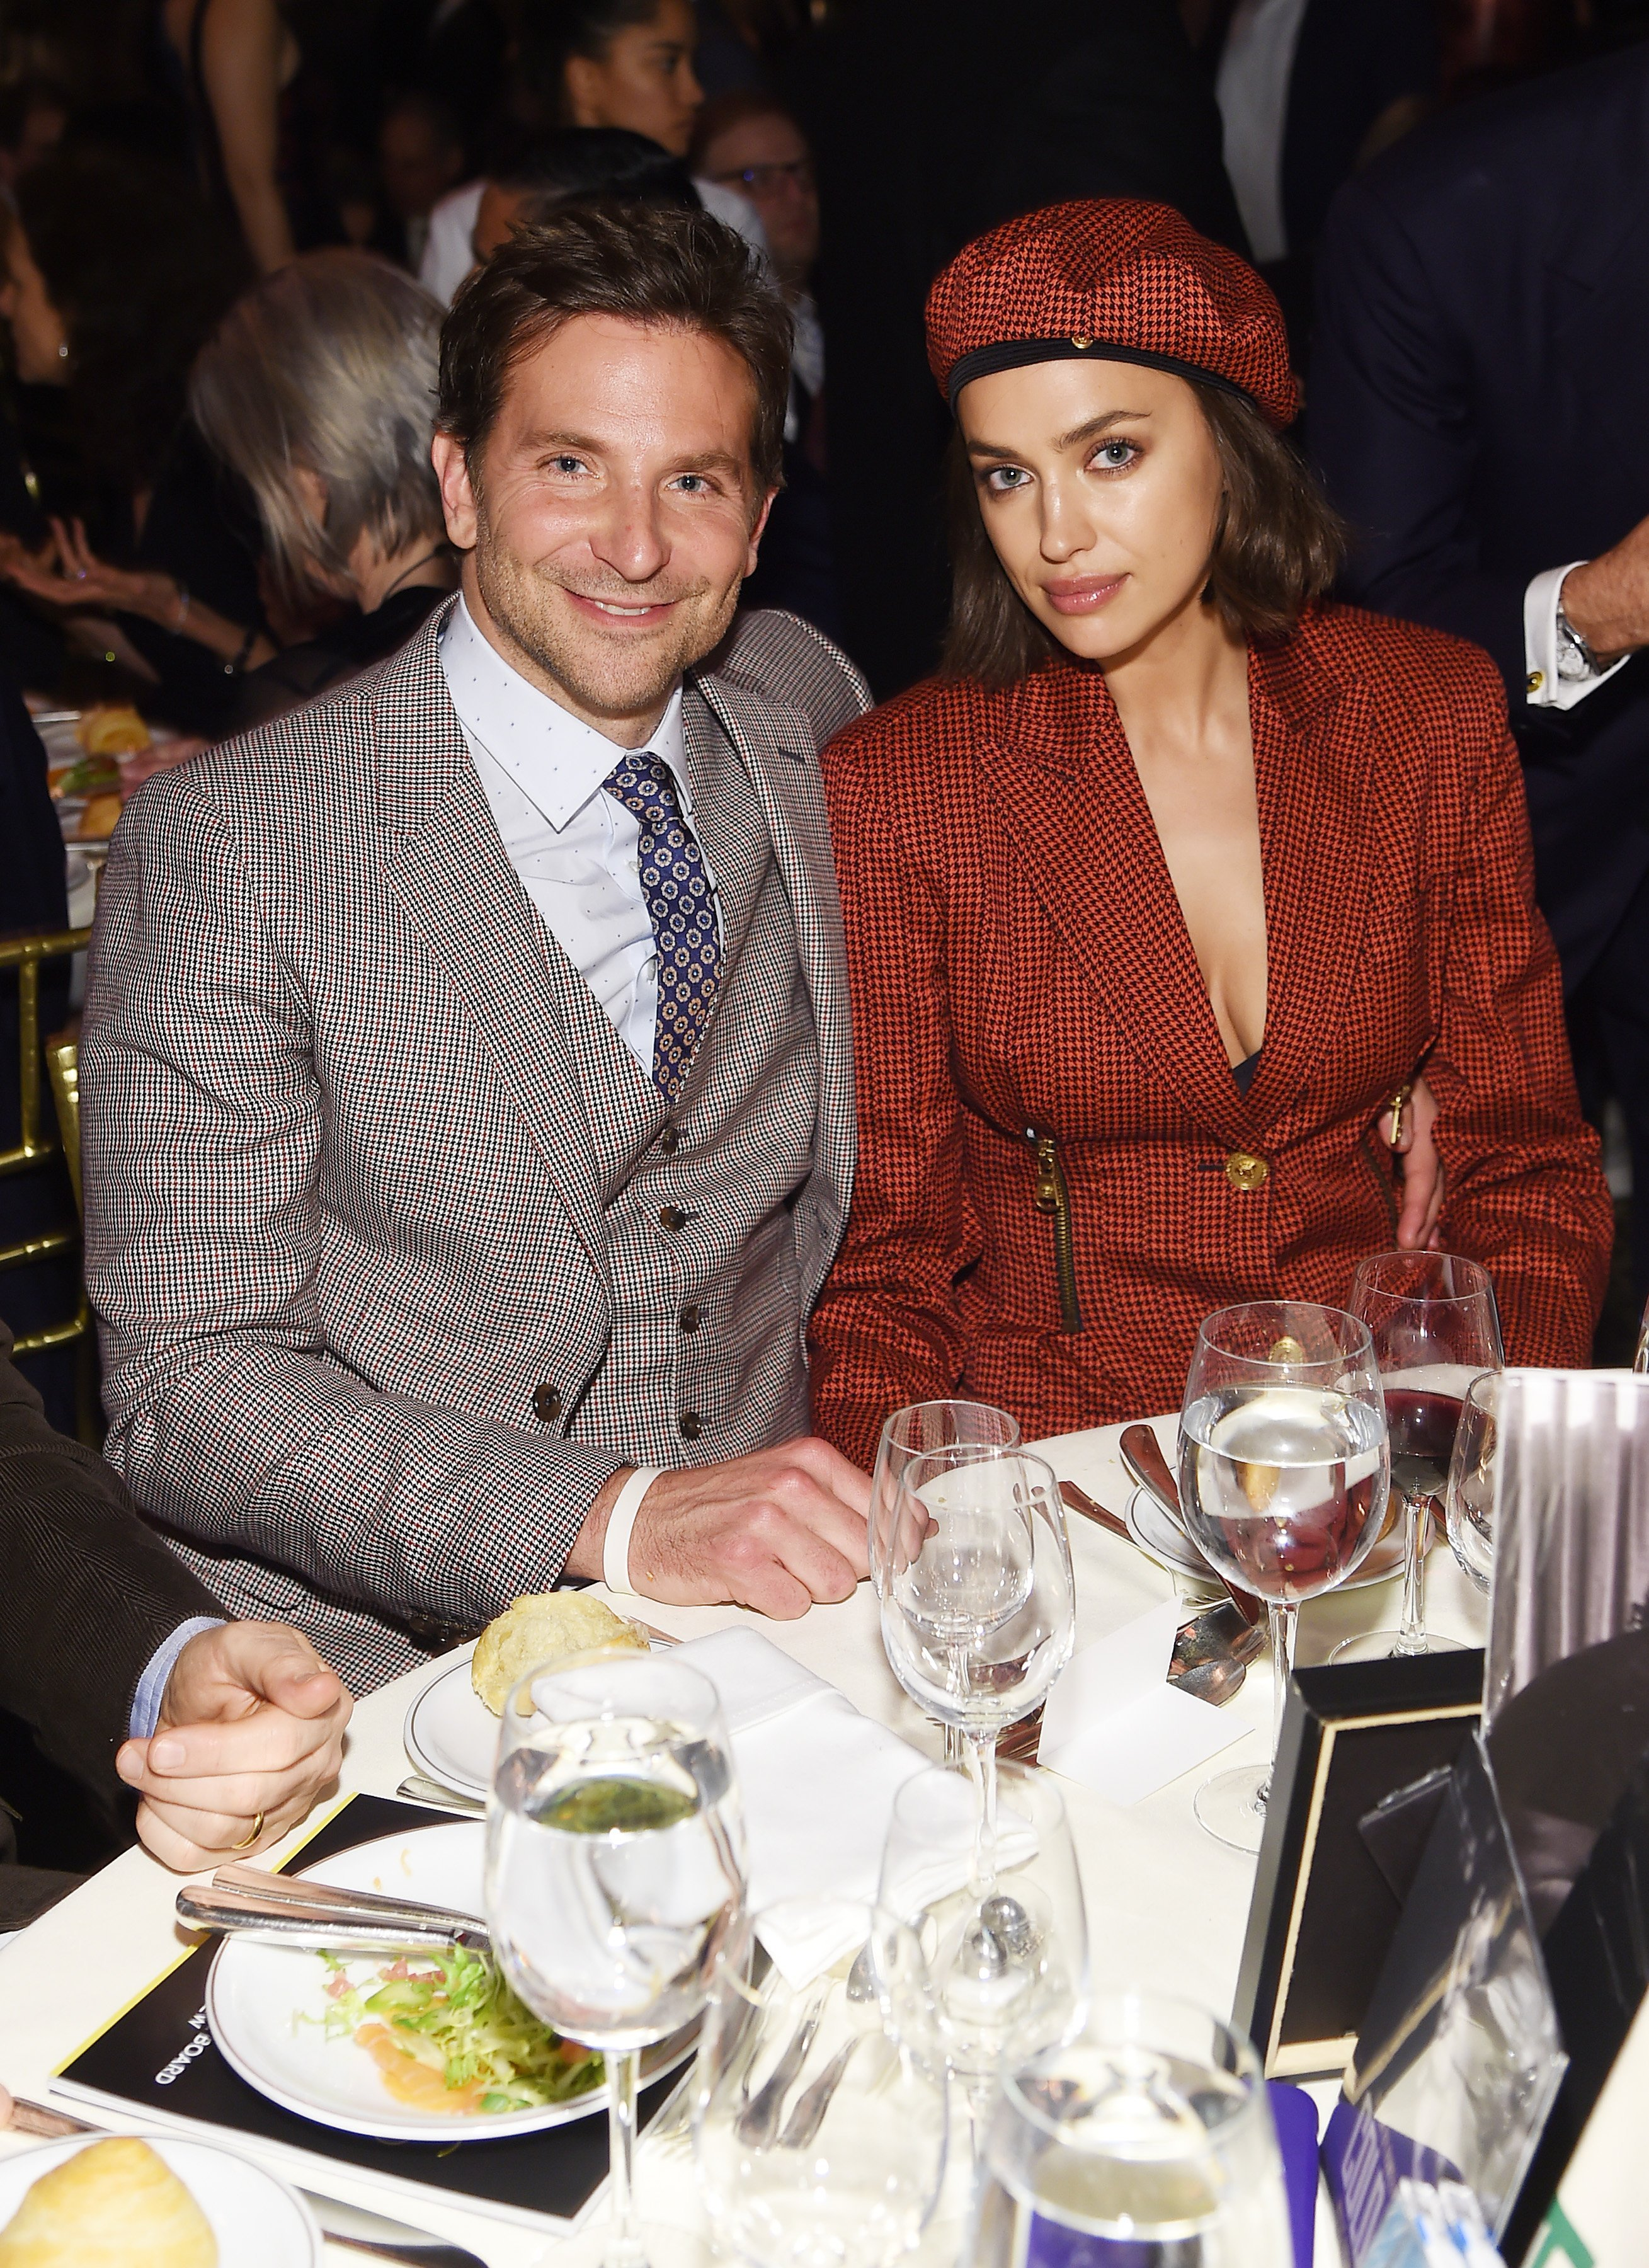 Bradley Cooper and Irina Shayk at Cipriani 42nd Street on January 8, 2019 in New York City | Photo: Getty Images